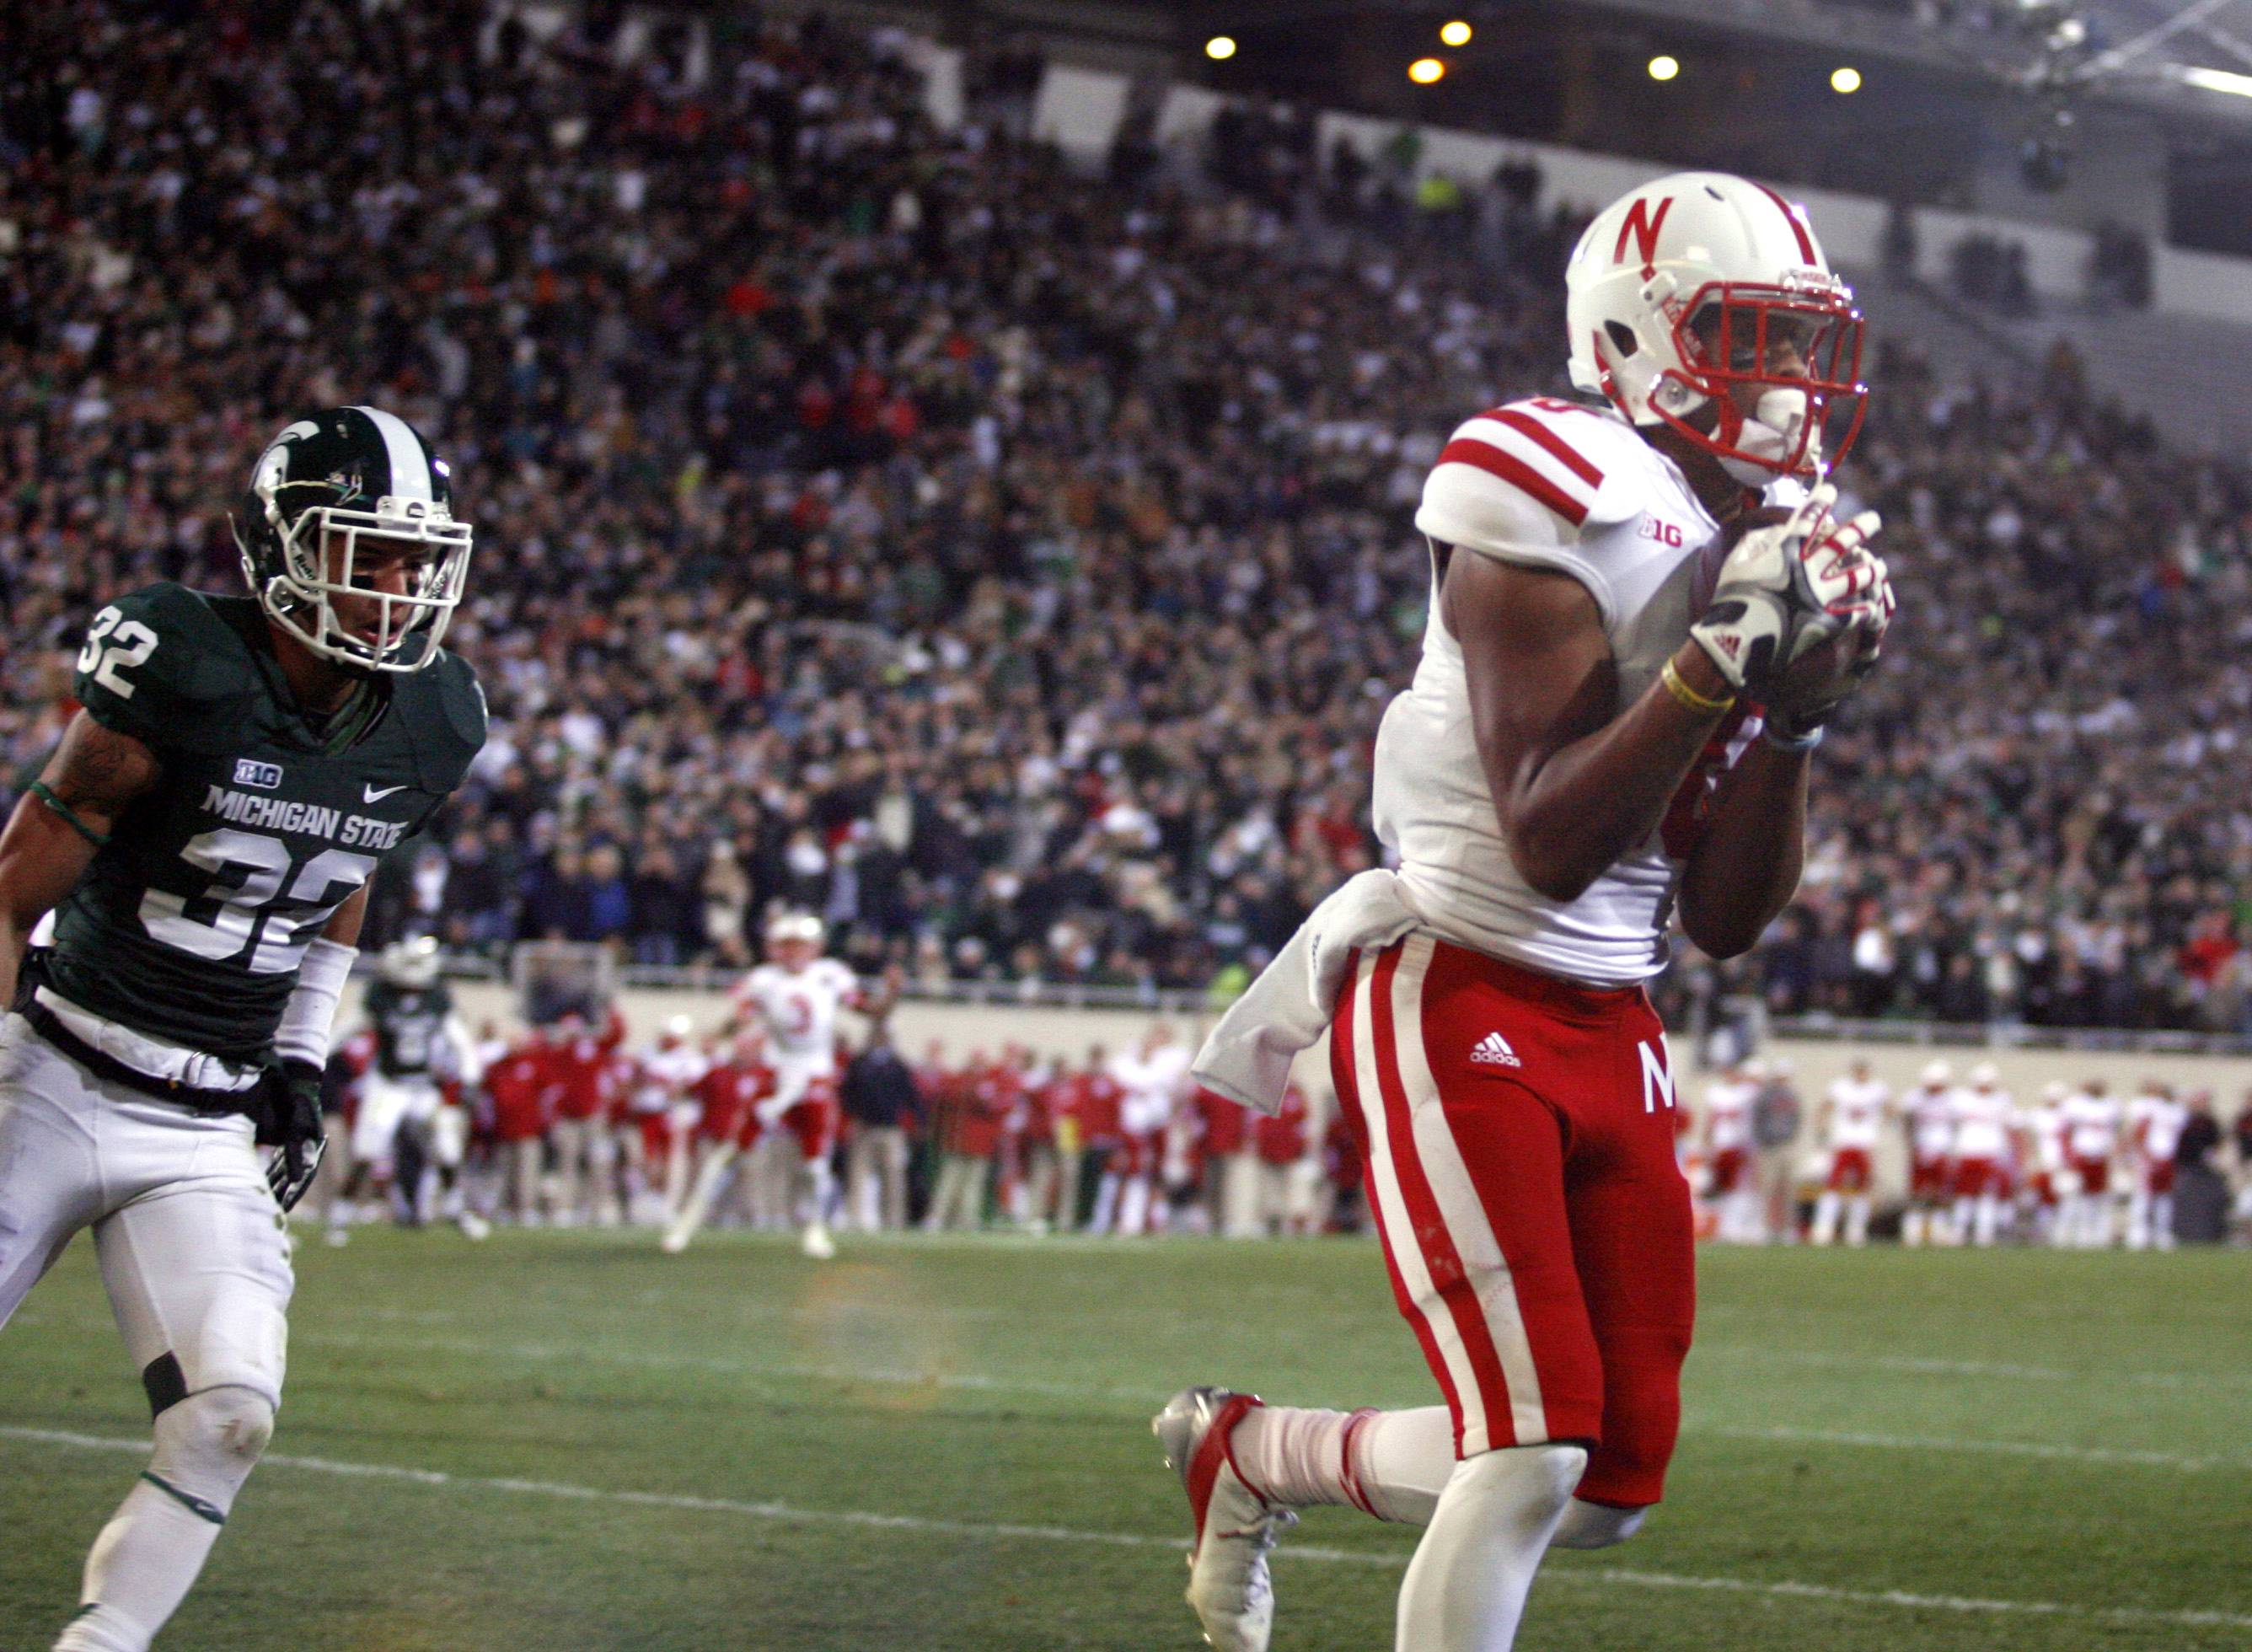 Nebraska beats Michigan St 28-24 on last-second TD